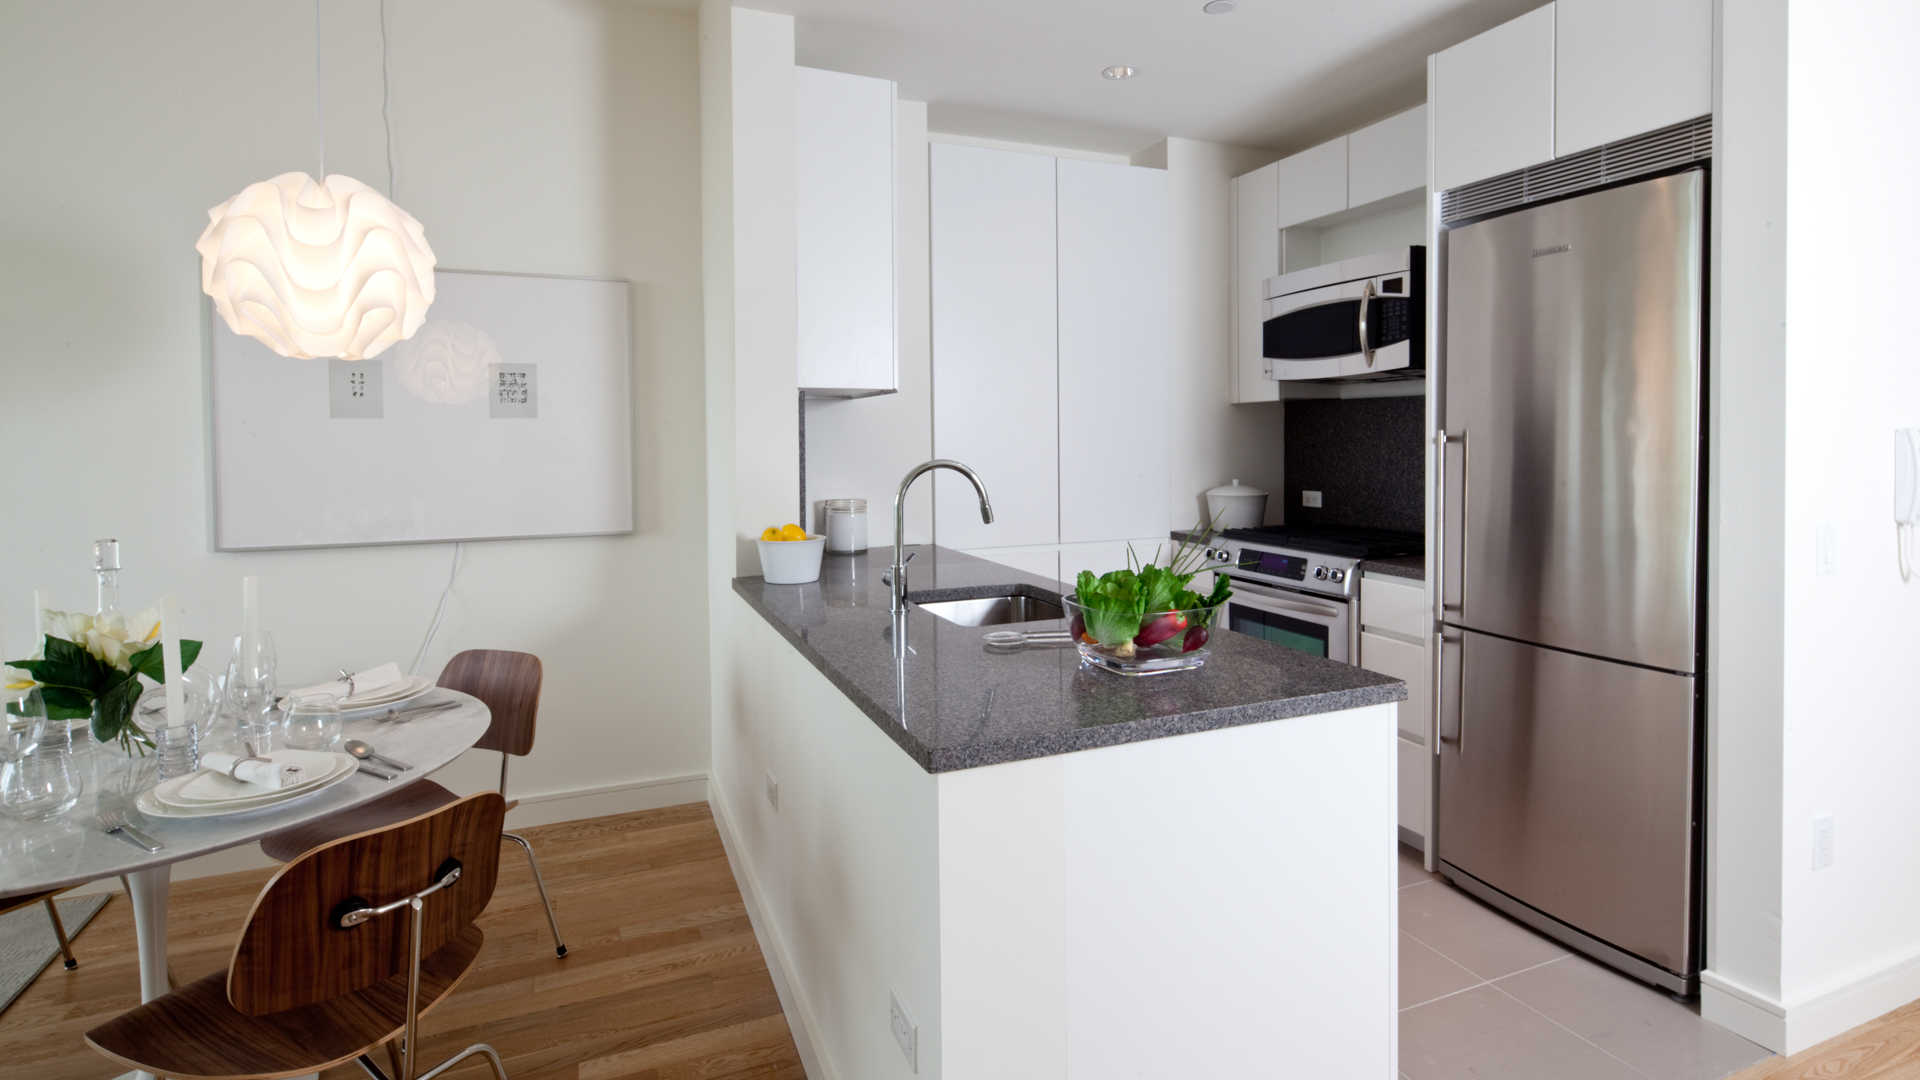 New York Apartments: Chelsea 1 Bedroom Apartment for Rent